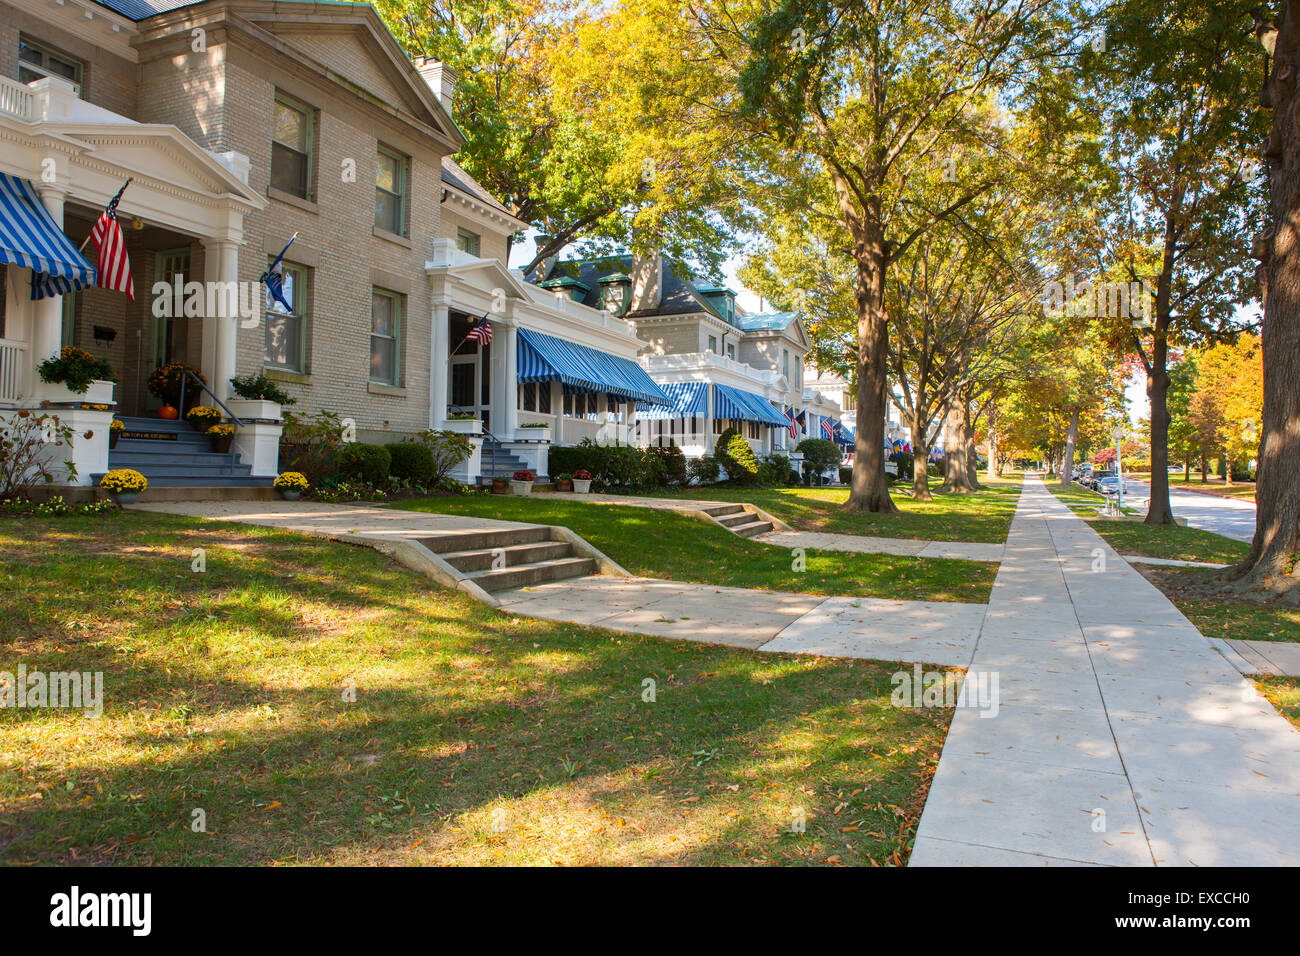 Residences on Captain's Row at the US Naval Academy in Annapolis, Maryland. - Stock Image